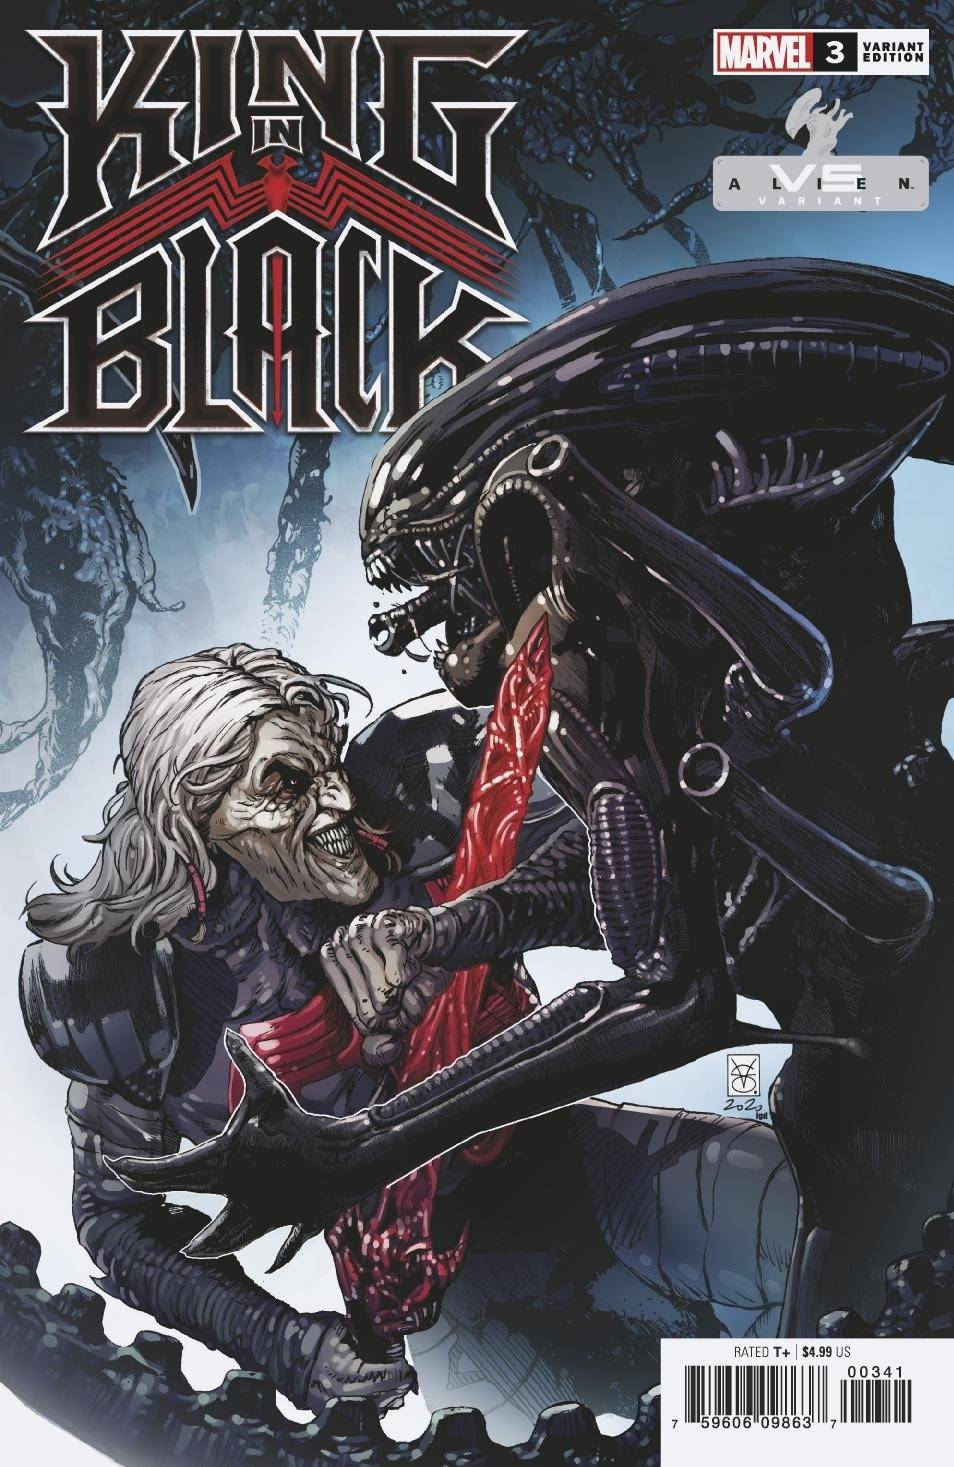 KING IN BLACK #3 (OF 5) GIANGIORDANO MARVEL VS ALIEN VAR